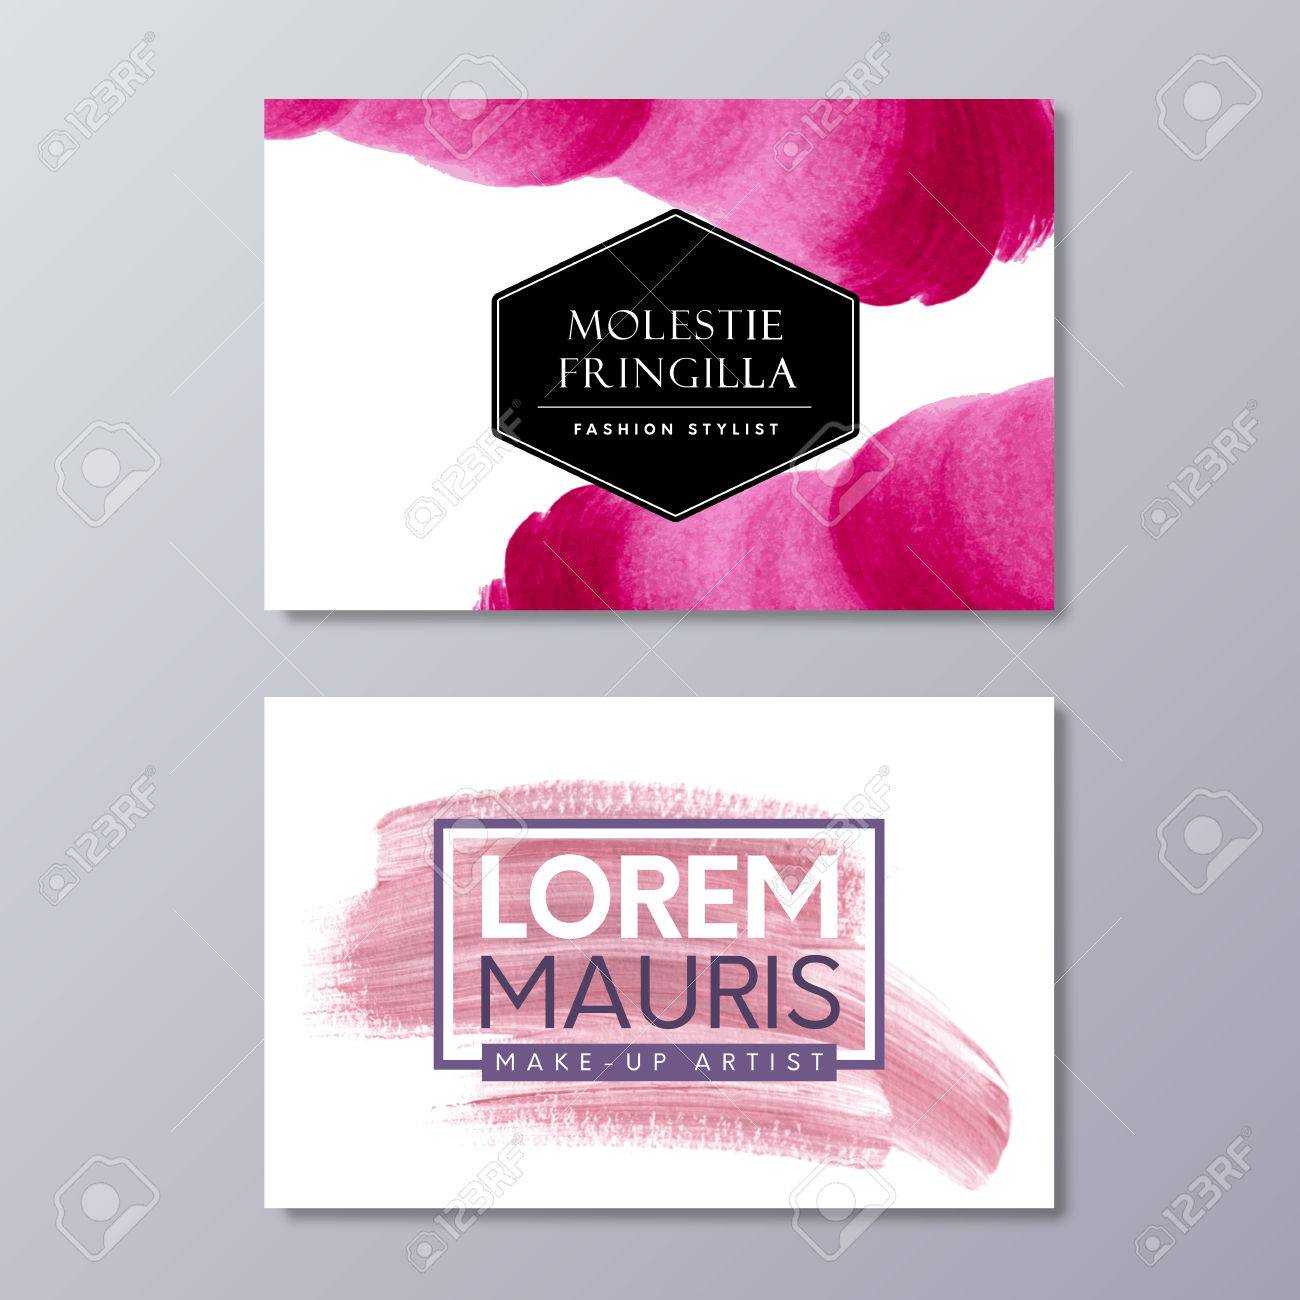 Abstract business card templates for fashion stylist make up abstract business card templates for fashion stylist make up artist or wedding logo cheaphphosting Choice Image